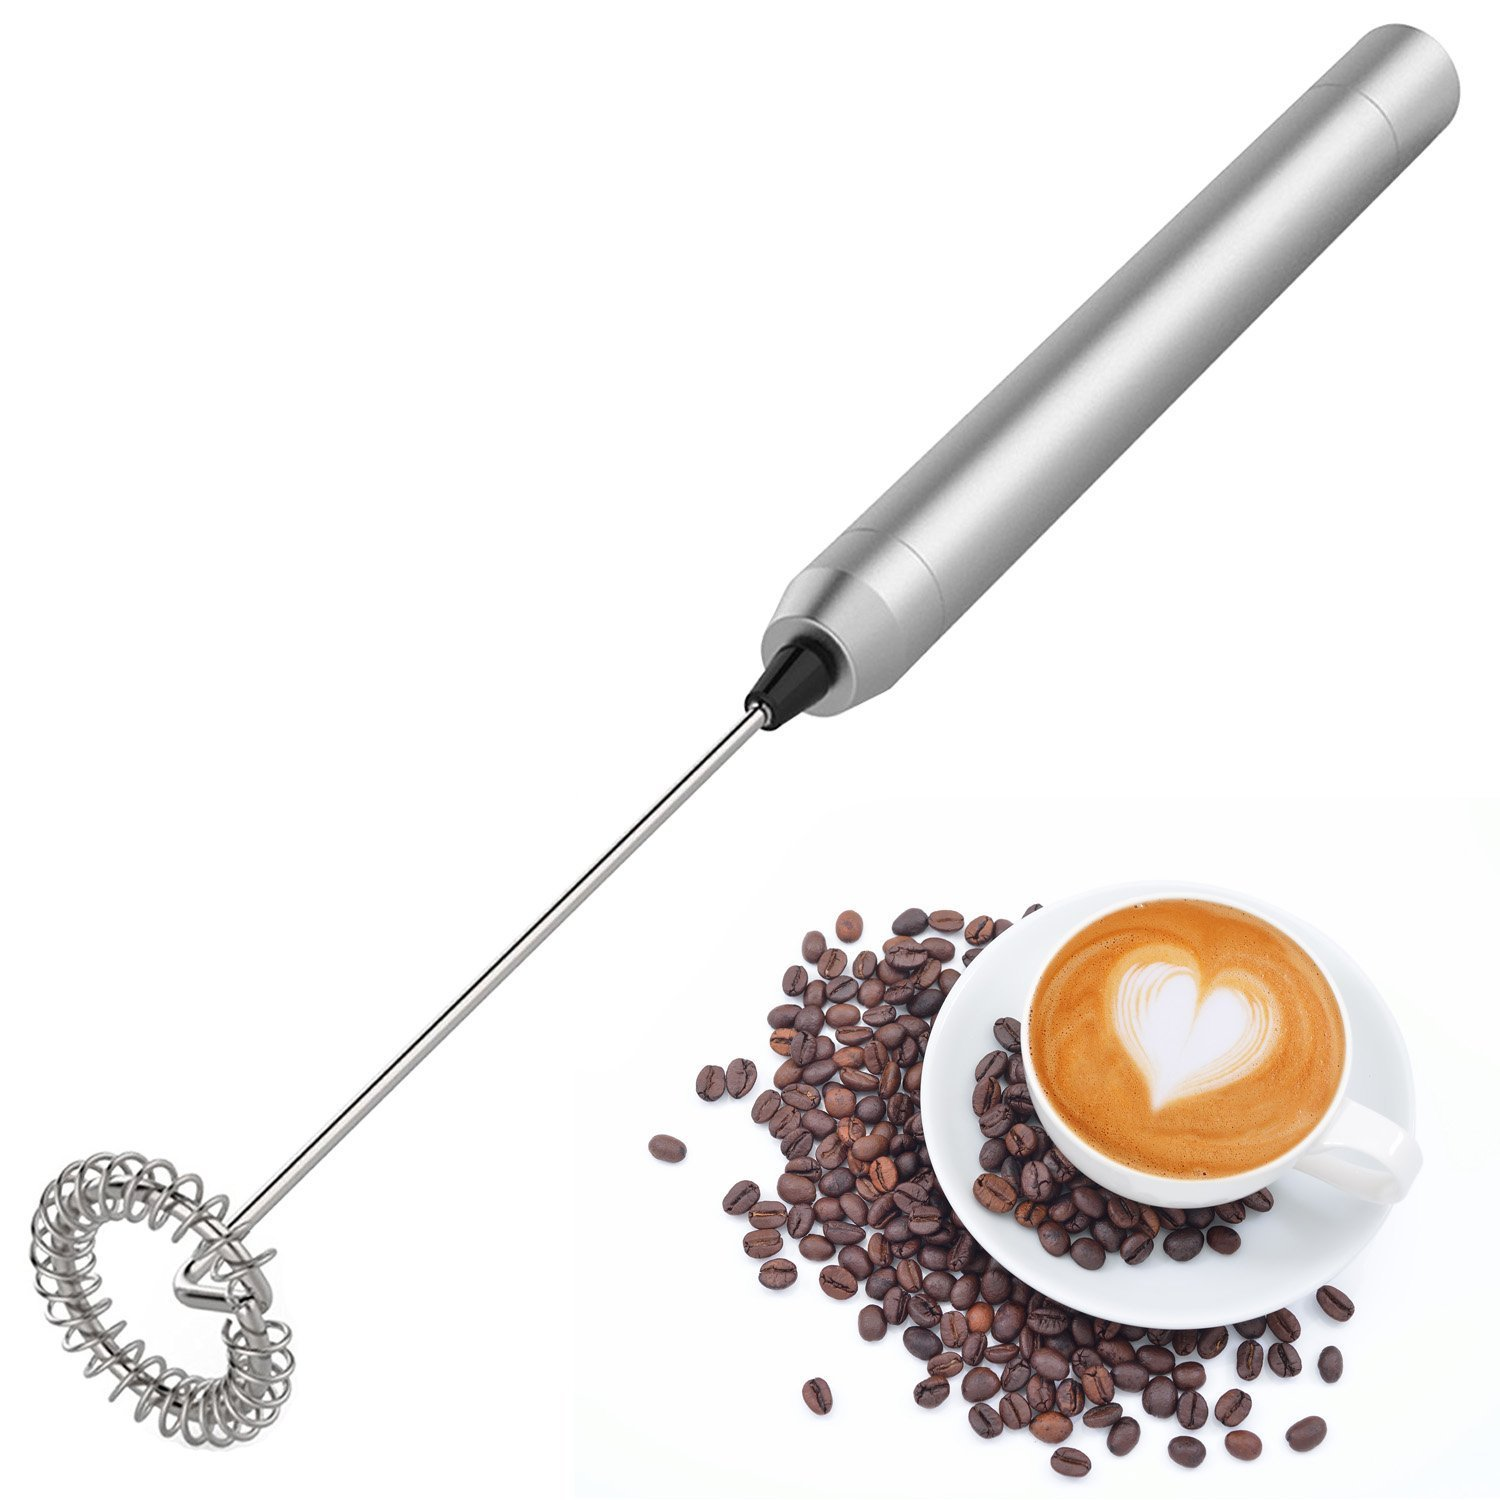 Handheld Electric Milk Frother,Food Grade Quality Stainless Steel Mini Portable Whisk- Silver KMax